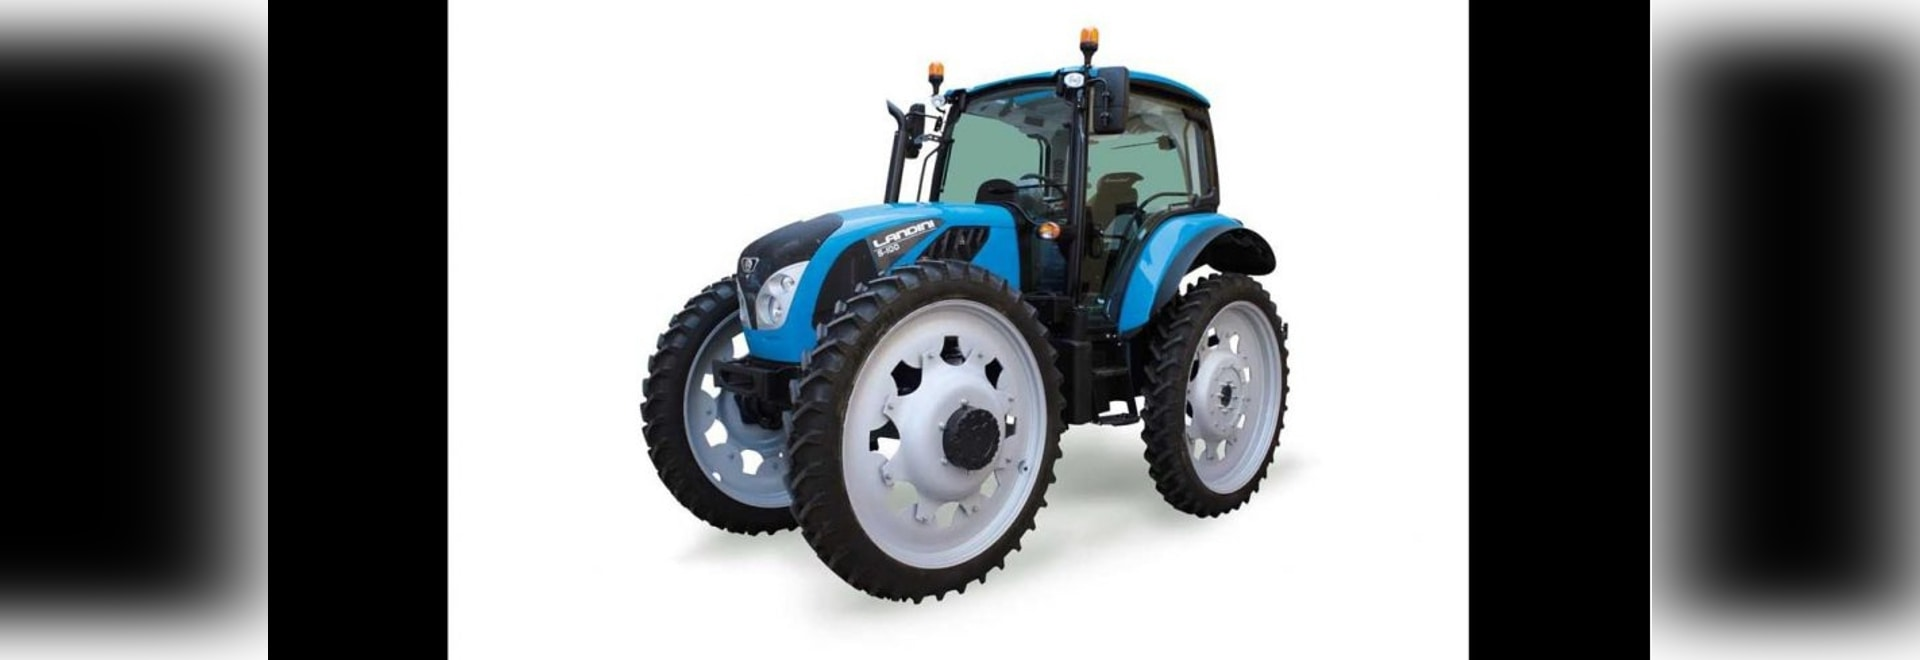 The new Landini 5 HC tractors stand on the same-size wheels all round with tyres up to 11.2R44 providing up to 695mm (27½in) of under-axle clearance.